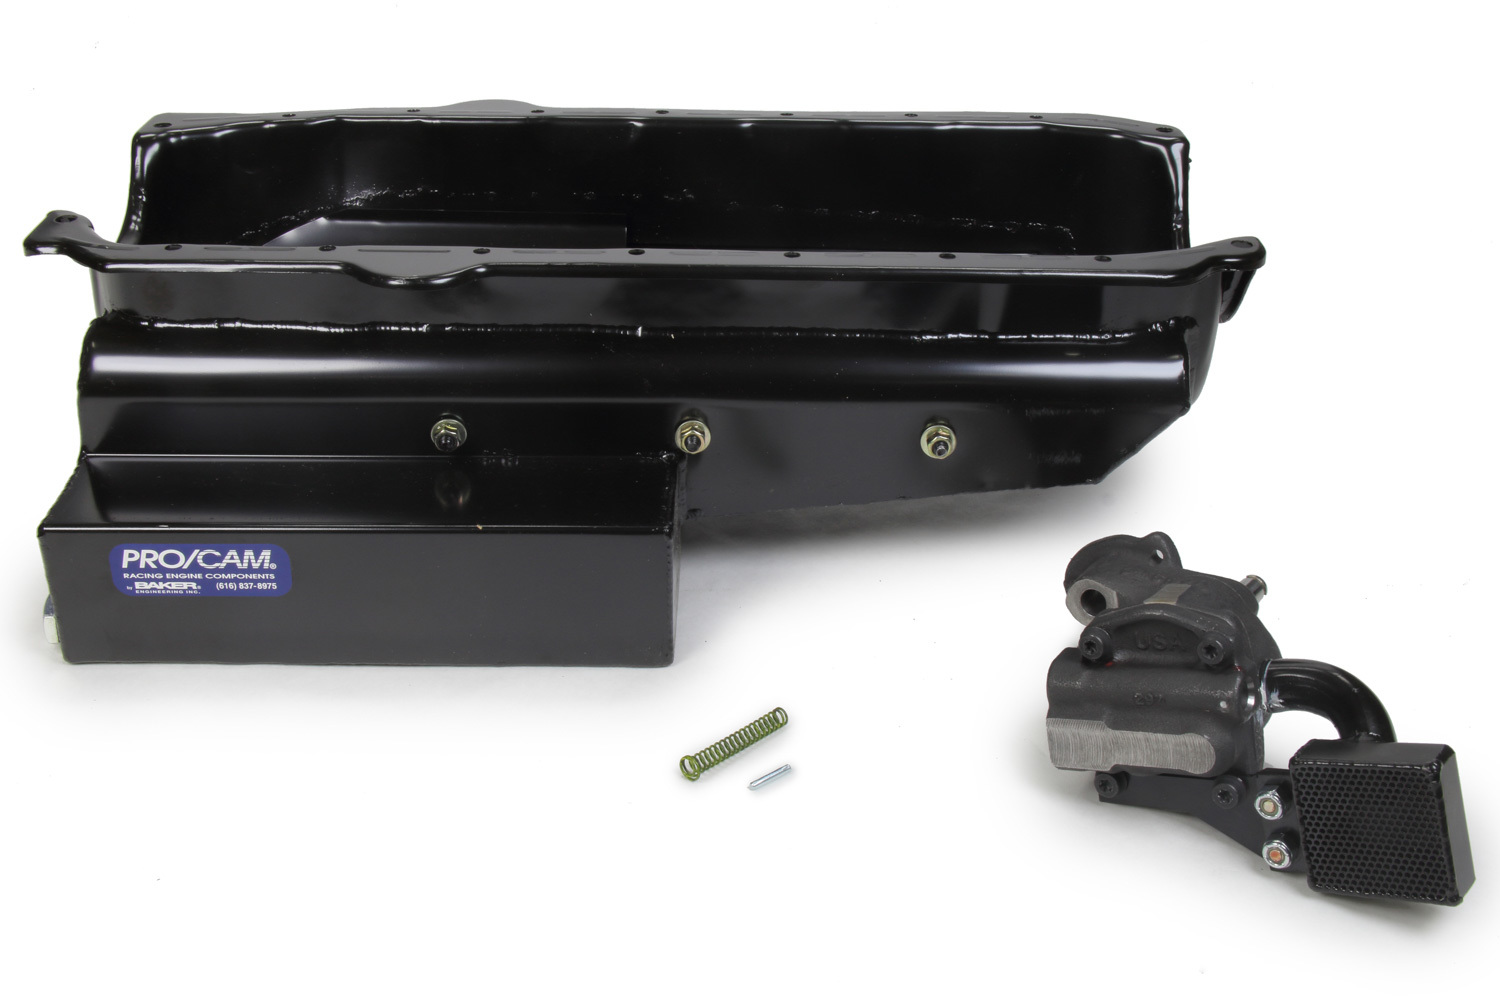 Pro Cam 9137-6N Engine Oil Pan Kit, Oval Track, Rear Sump, 7 qt, 6-1/2 in Deep, High Volume Oil Pump / Pickup Included, Steel, Black Paint, Small Block Chevy, Kit